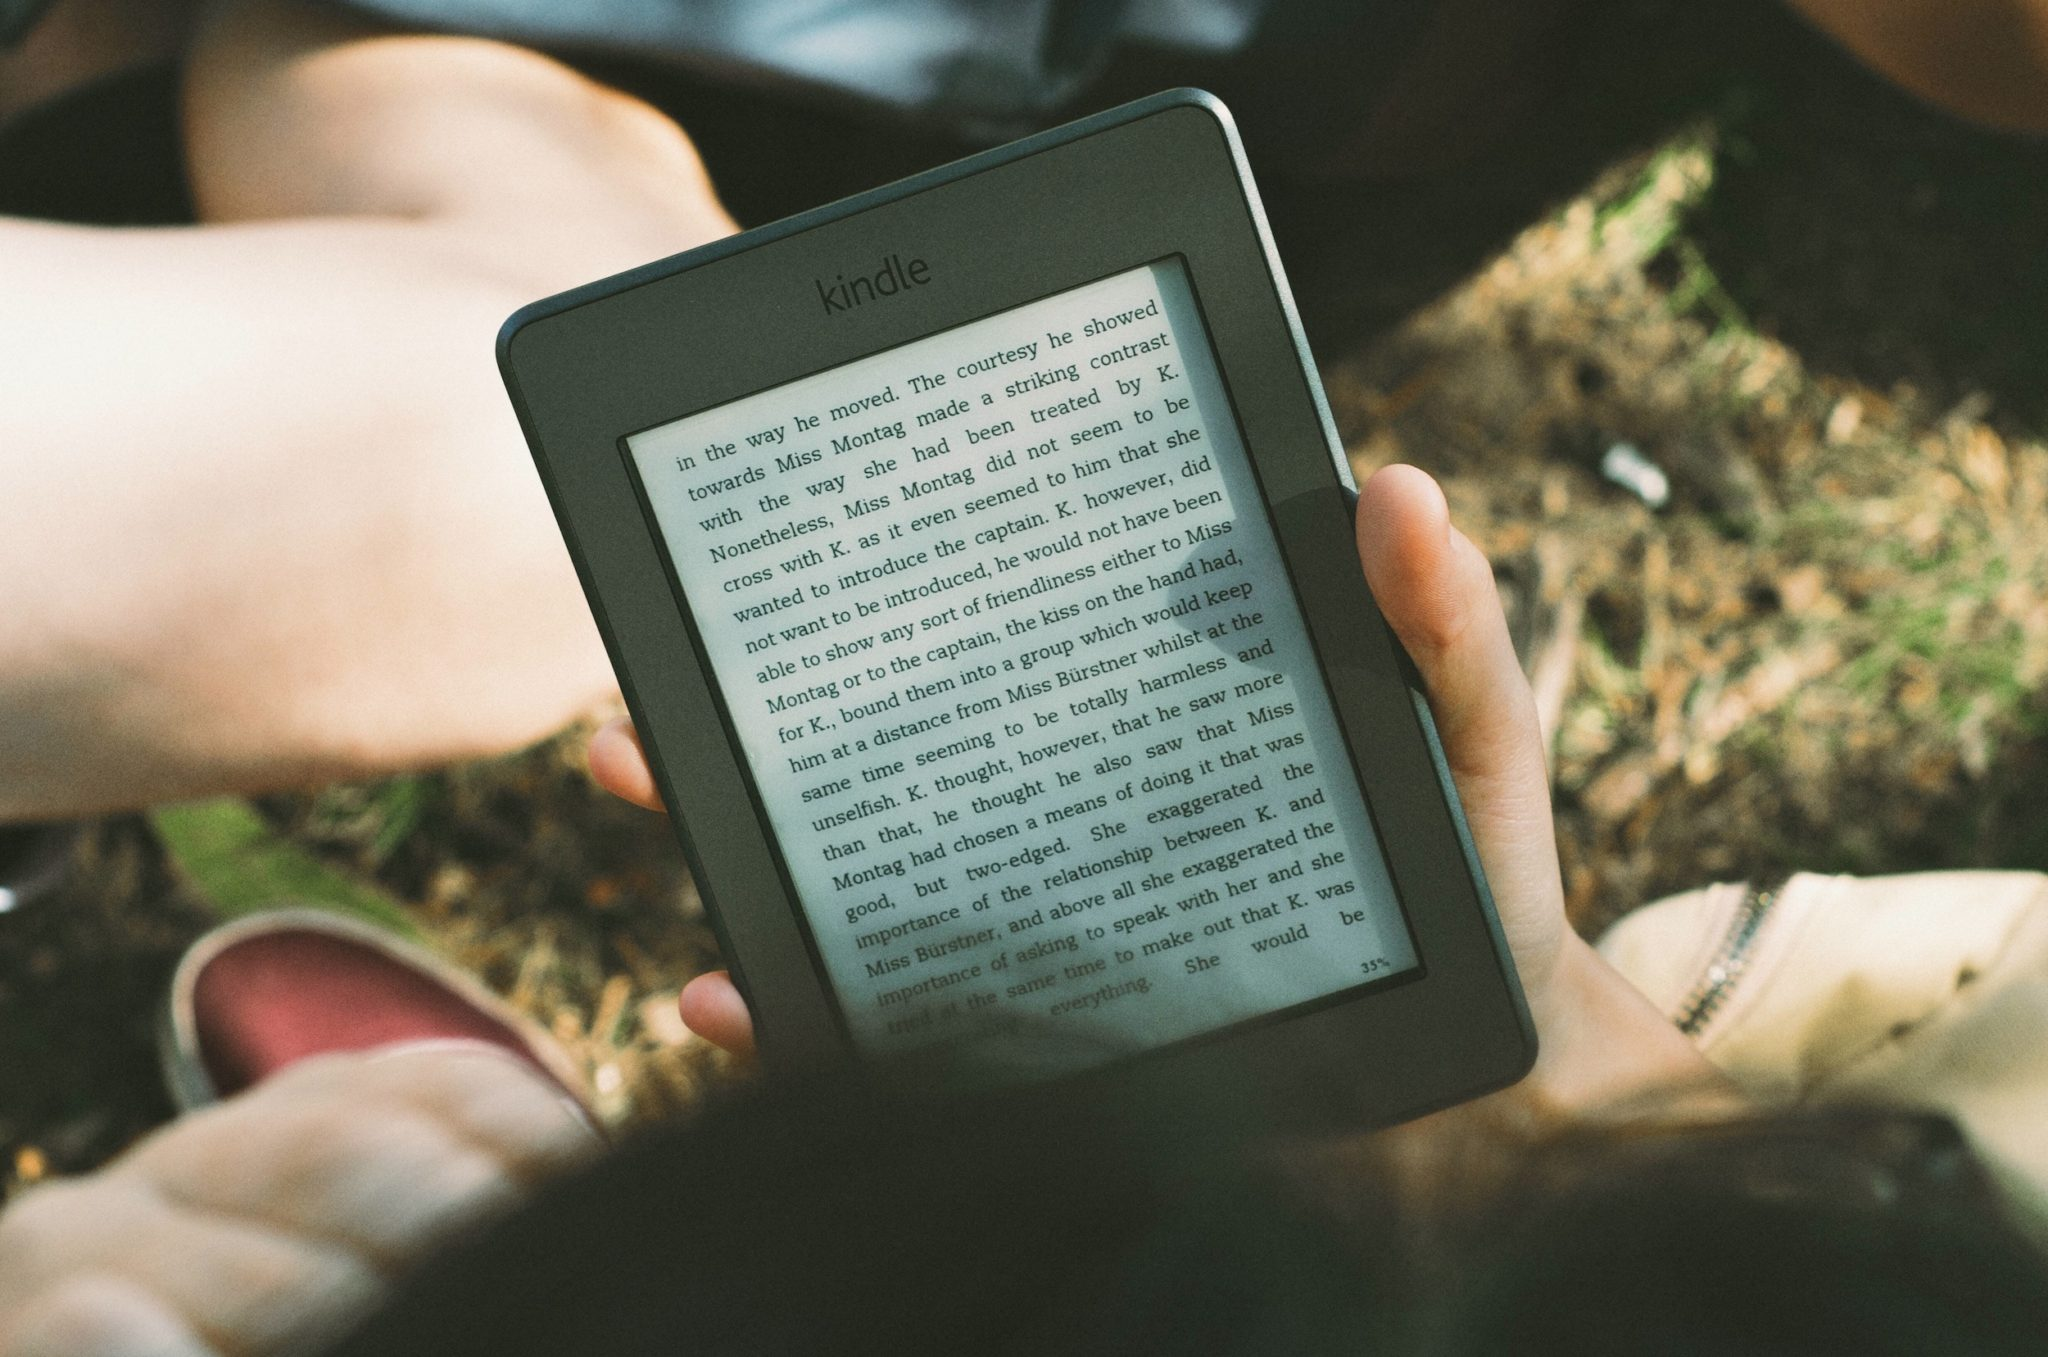 Person reading Kindle Ereader outside, by James Tarbotten on stocksnap.io